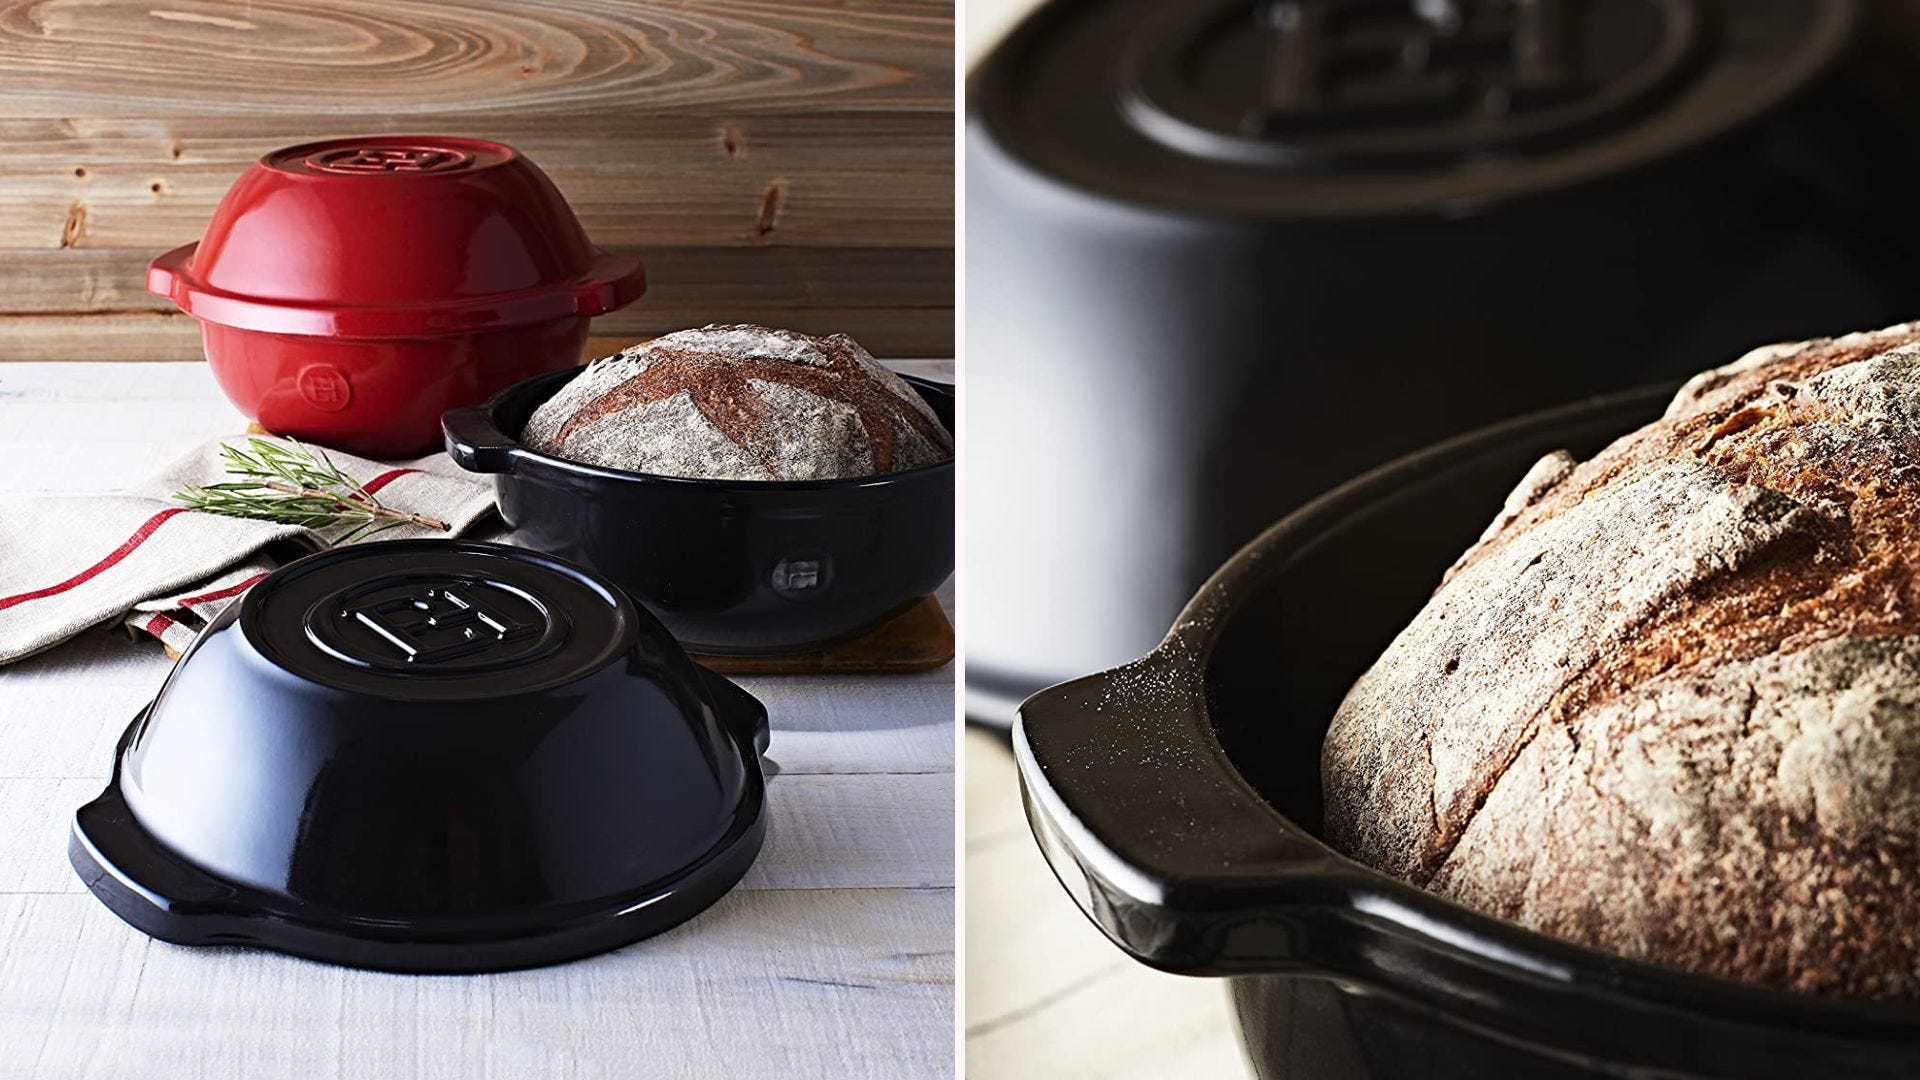 A loaf of bread in a black ceramic pot; a close up of the same loaf in pot